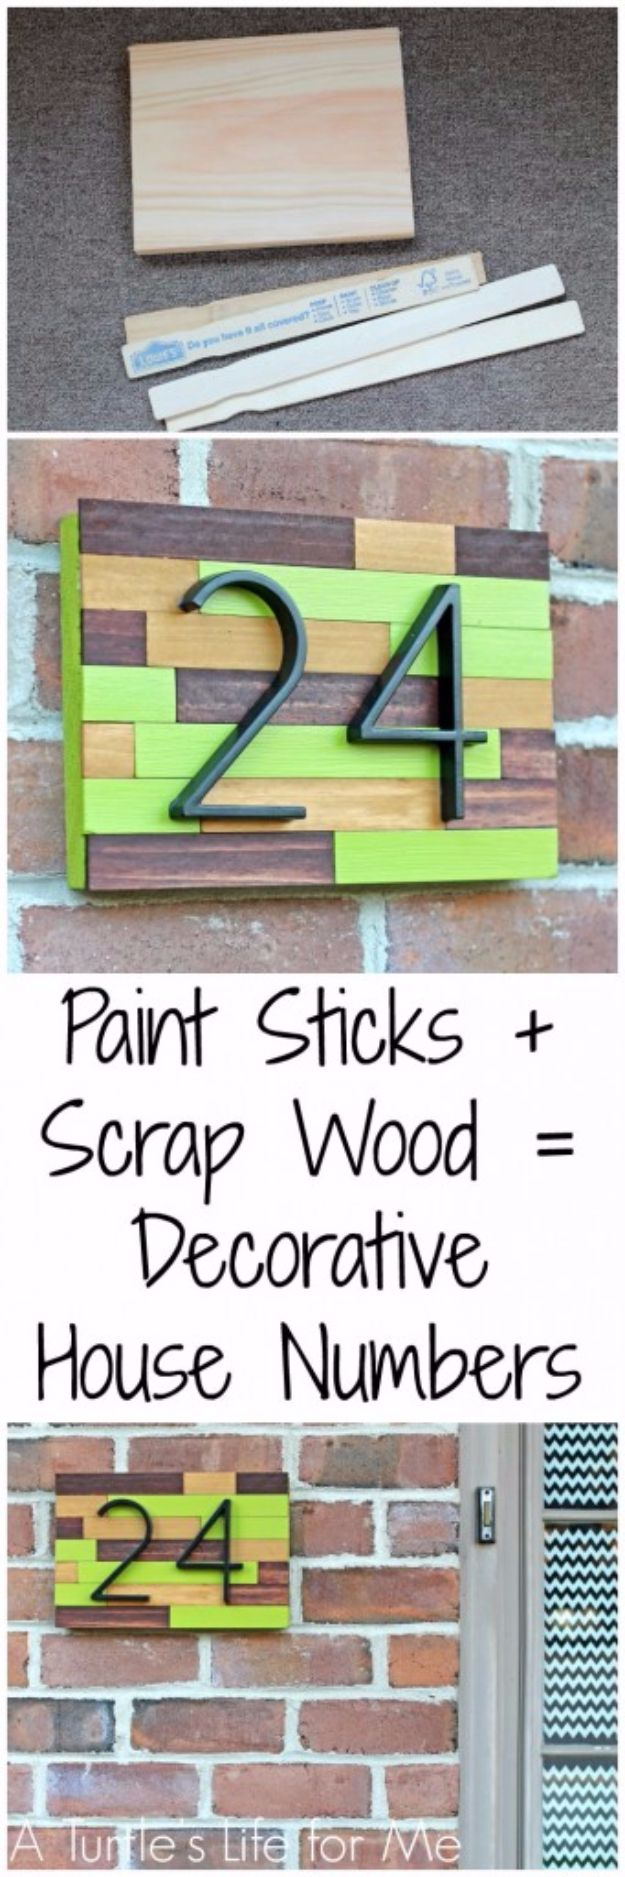 DIY House Numbers - House Number Plaque From Paint Sticks And Scrap Wood - DIY Numbers To Put In Front Yard and At Front Door - Architectural Numbers and Creative Do It Yourself Projects for Making House Numbers - Easy Step by Step Tutorials and Project Ideas for Home Improvement on A Budget http://diyjoy.com/diy-house-numbers